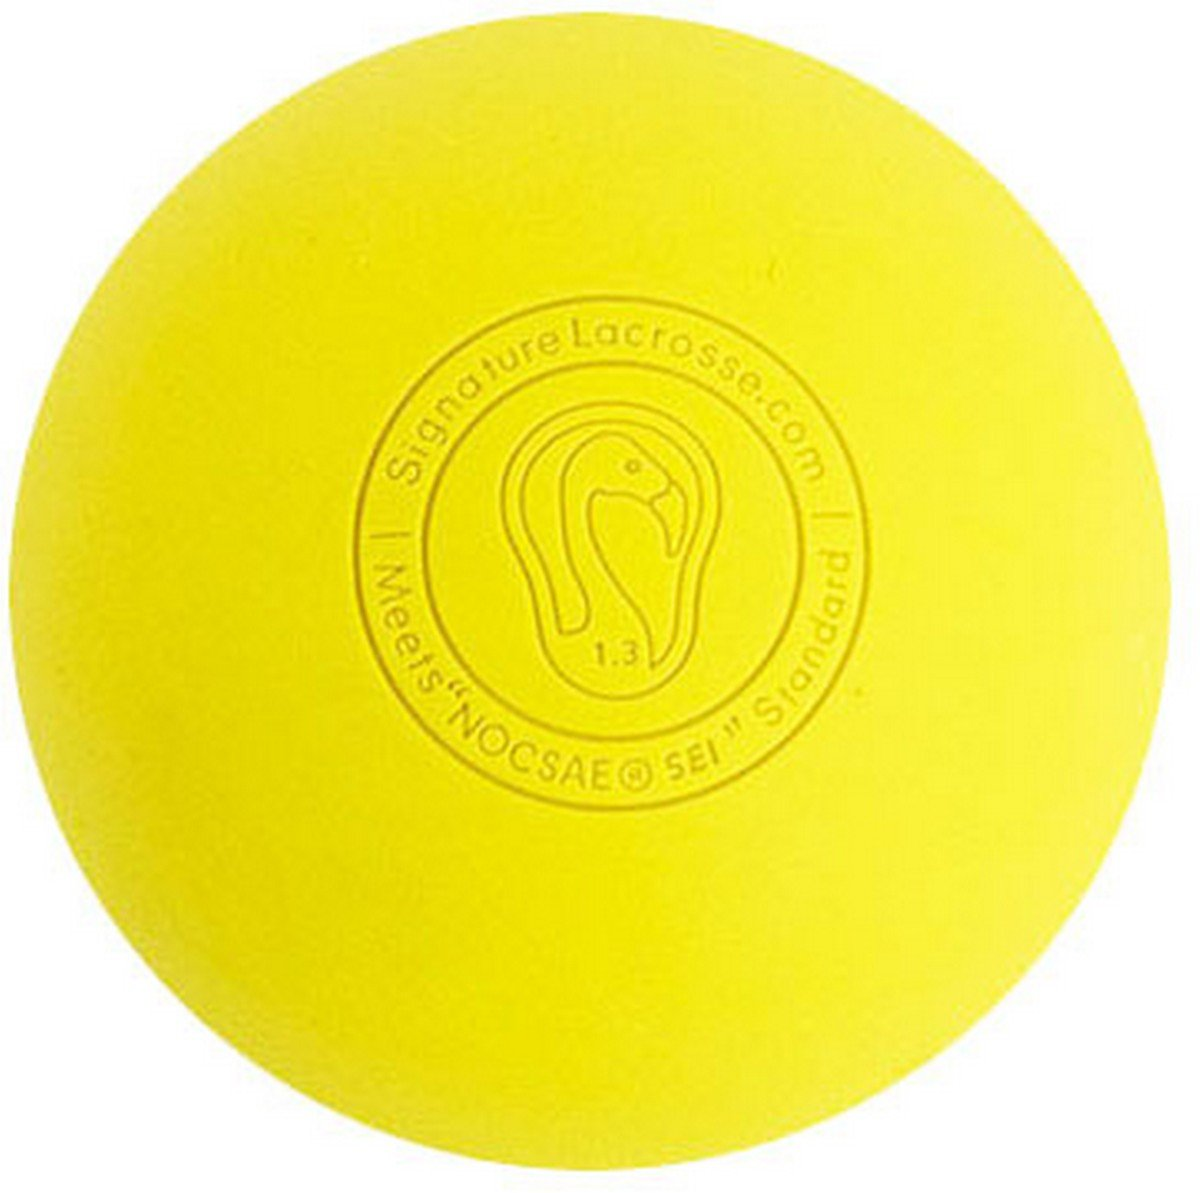 Signature Lacrosse Ball (8-Ball) Yellow NOCSAE & SEI Approved Yellow-8P